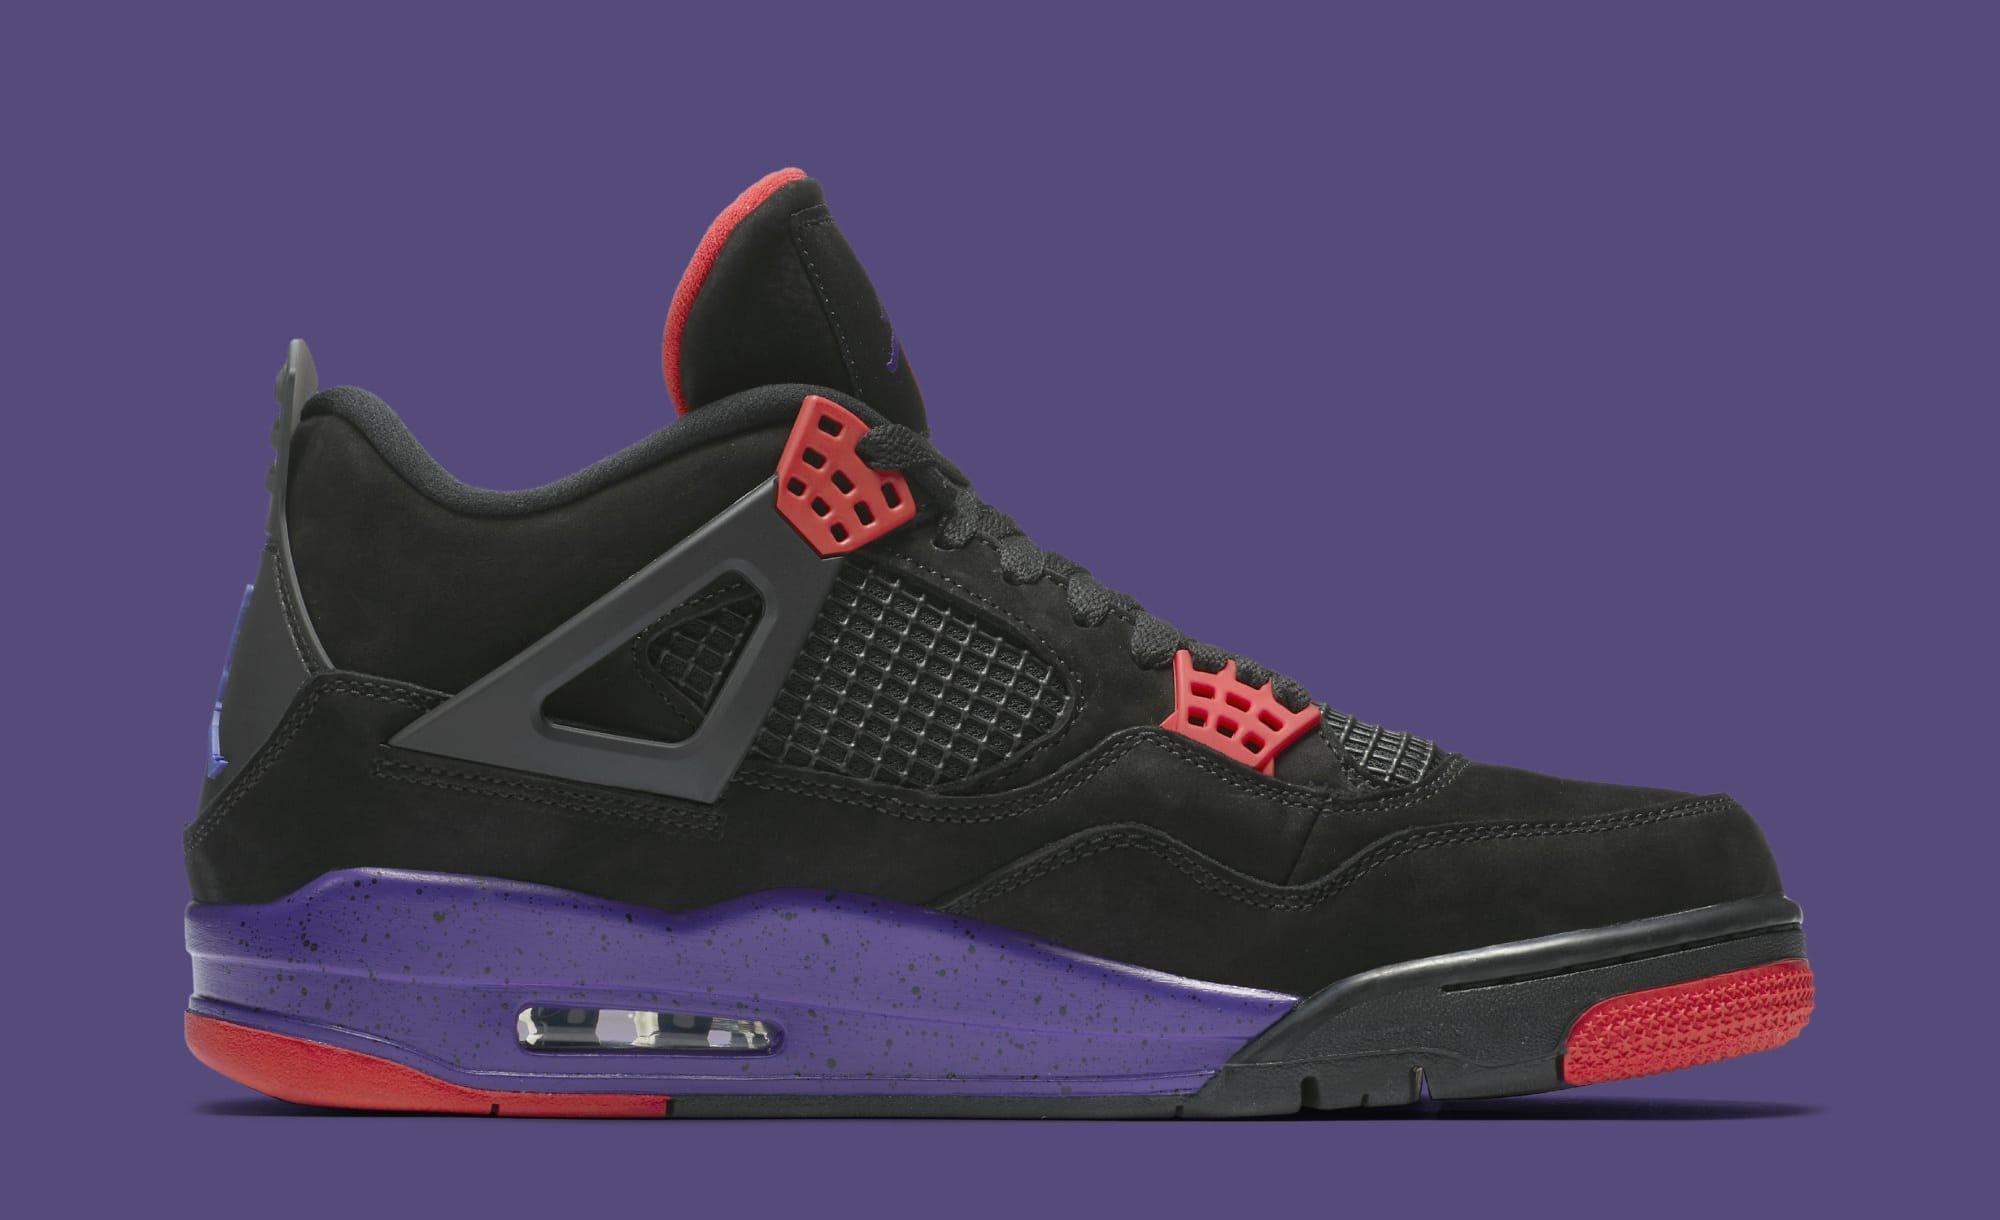 7f413b714dae92 ... online for sale Image via Nike Air Jordan 4 Retro Raptors AQ3816-056  (Medial ...